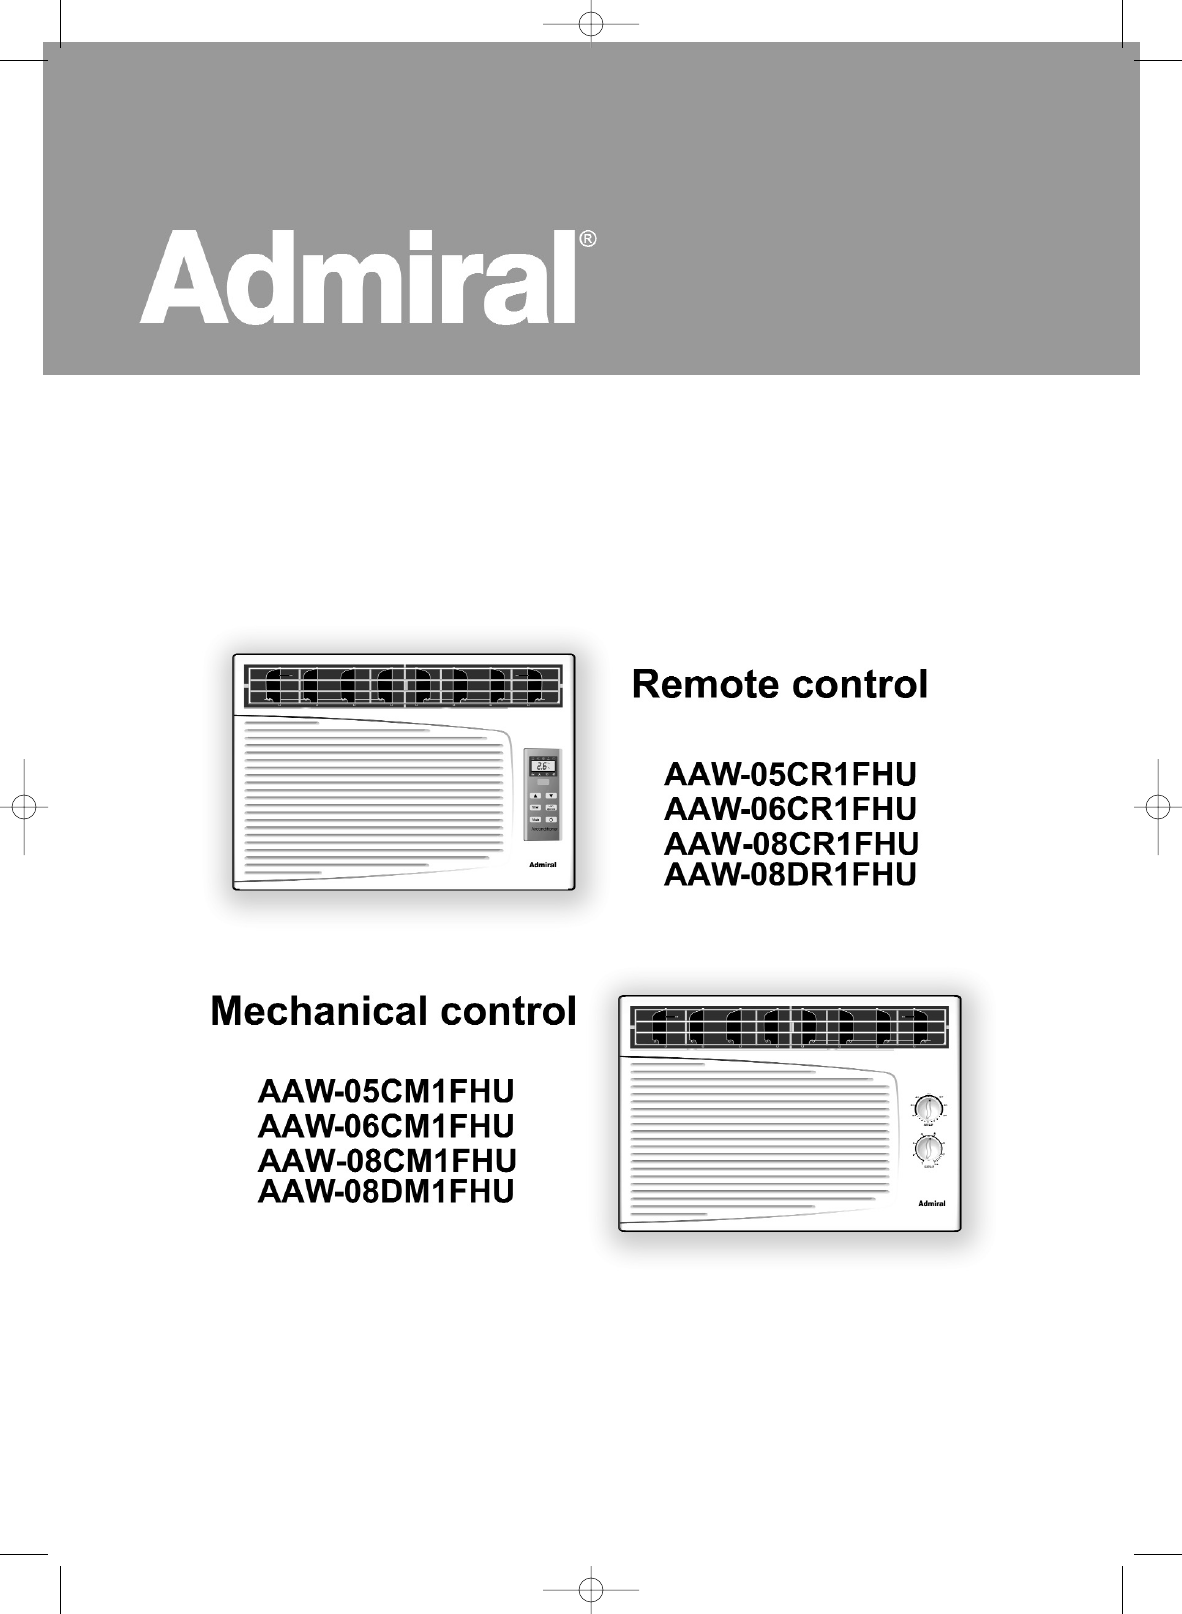 admiral air conditioner aaw 08cr1fhu user guide manualsonline com rh homeappliance manualsonline com Admiral Air Conditioner Controls Admiral Air Conditioner Air Wall